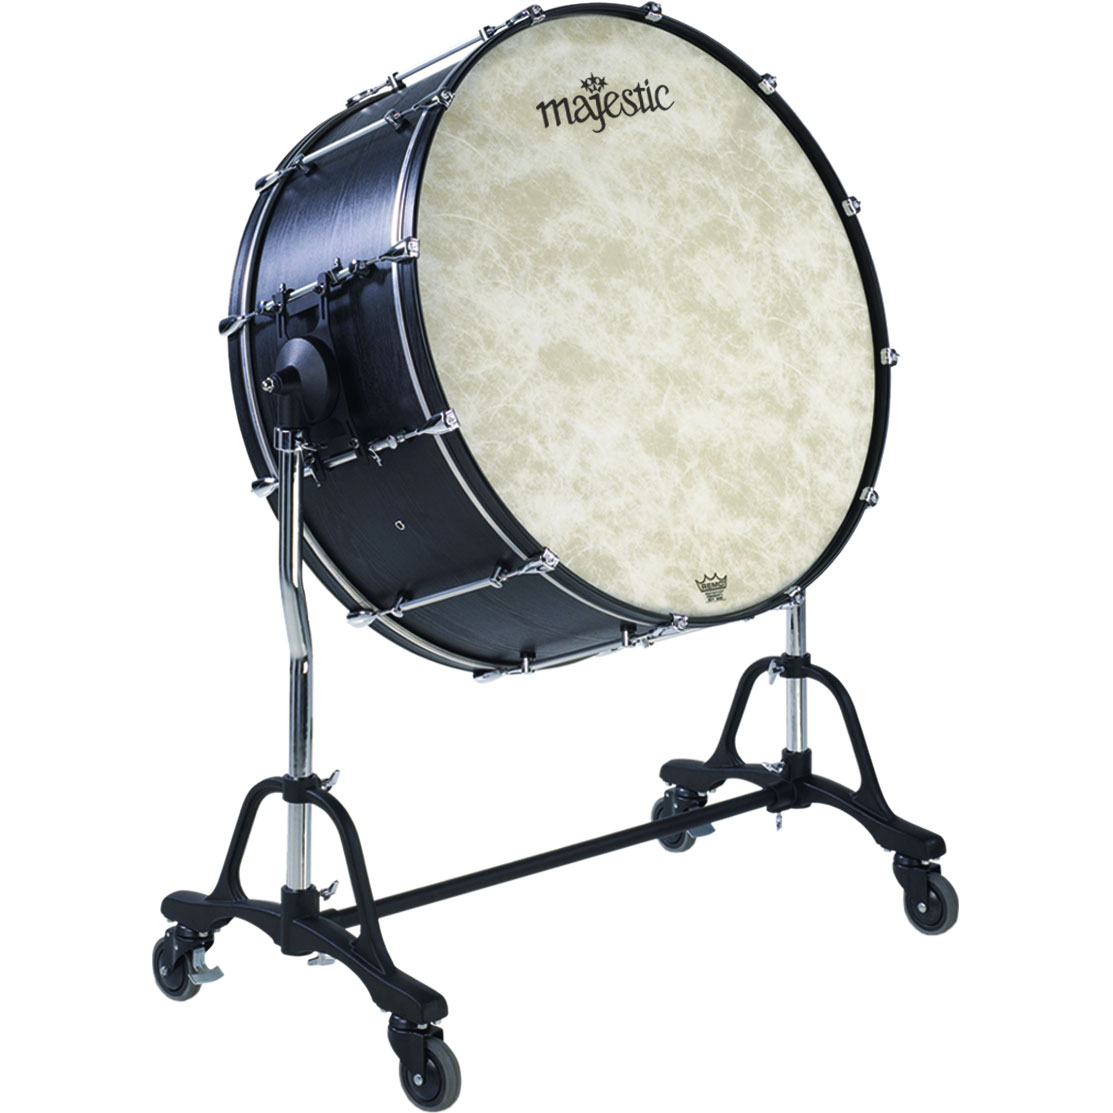 "Majestic 36"" (Diameter) x 22"" (Deep) Concert Black Concert Bass Drum with QBSXX Field Tilting Stand"